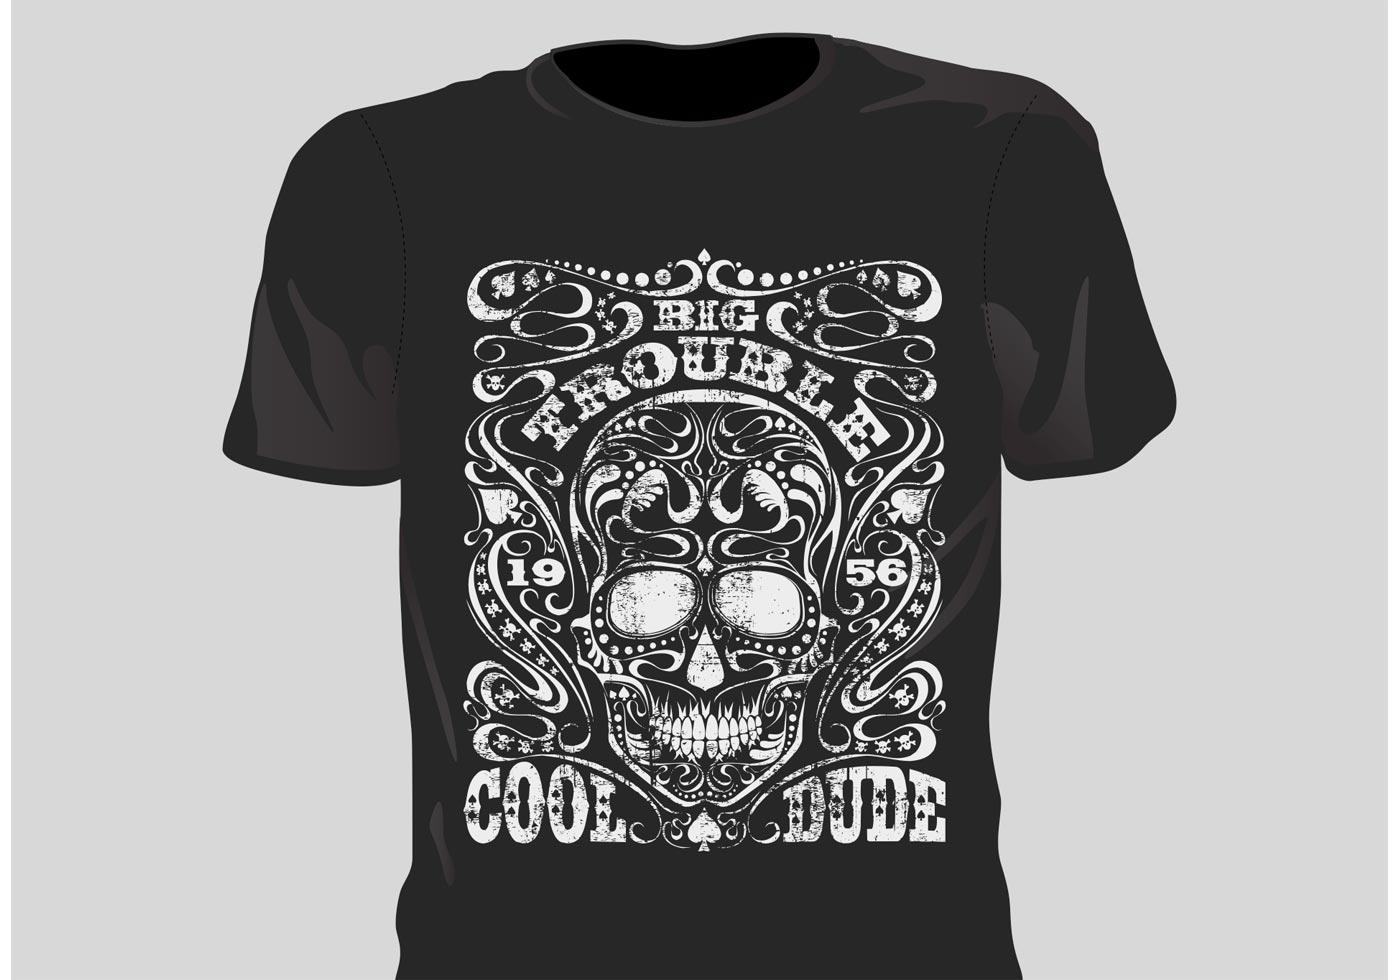 T shirt design jquery - Design T Shirt Maker Fabulous Design T Shirt Ideas To Try Out In 2017